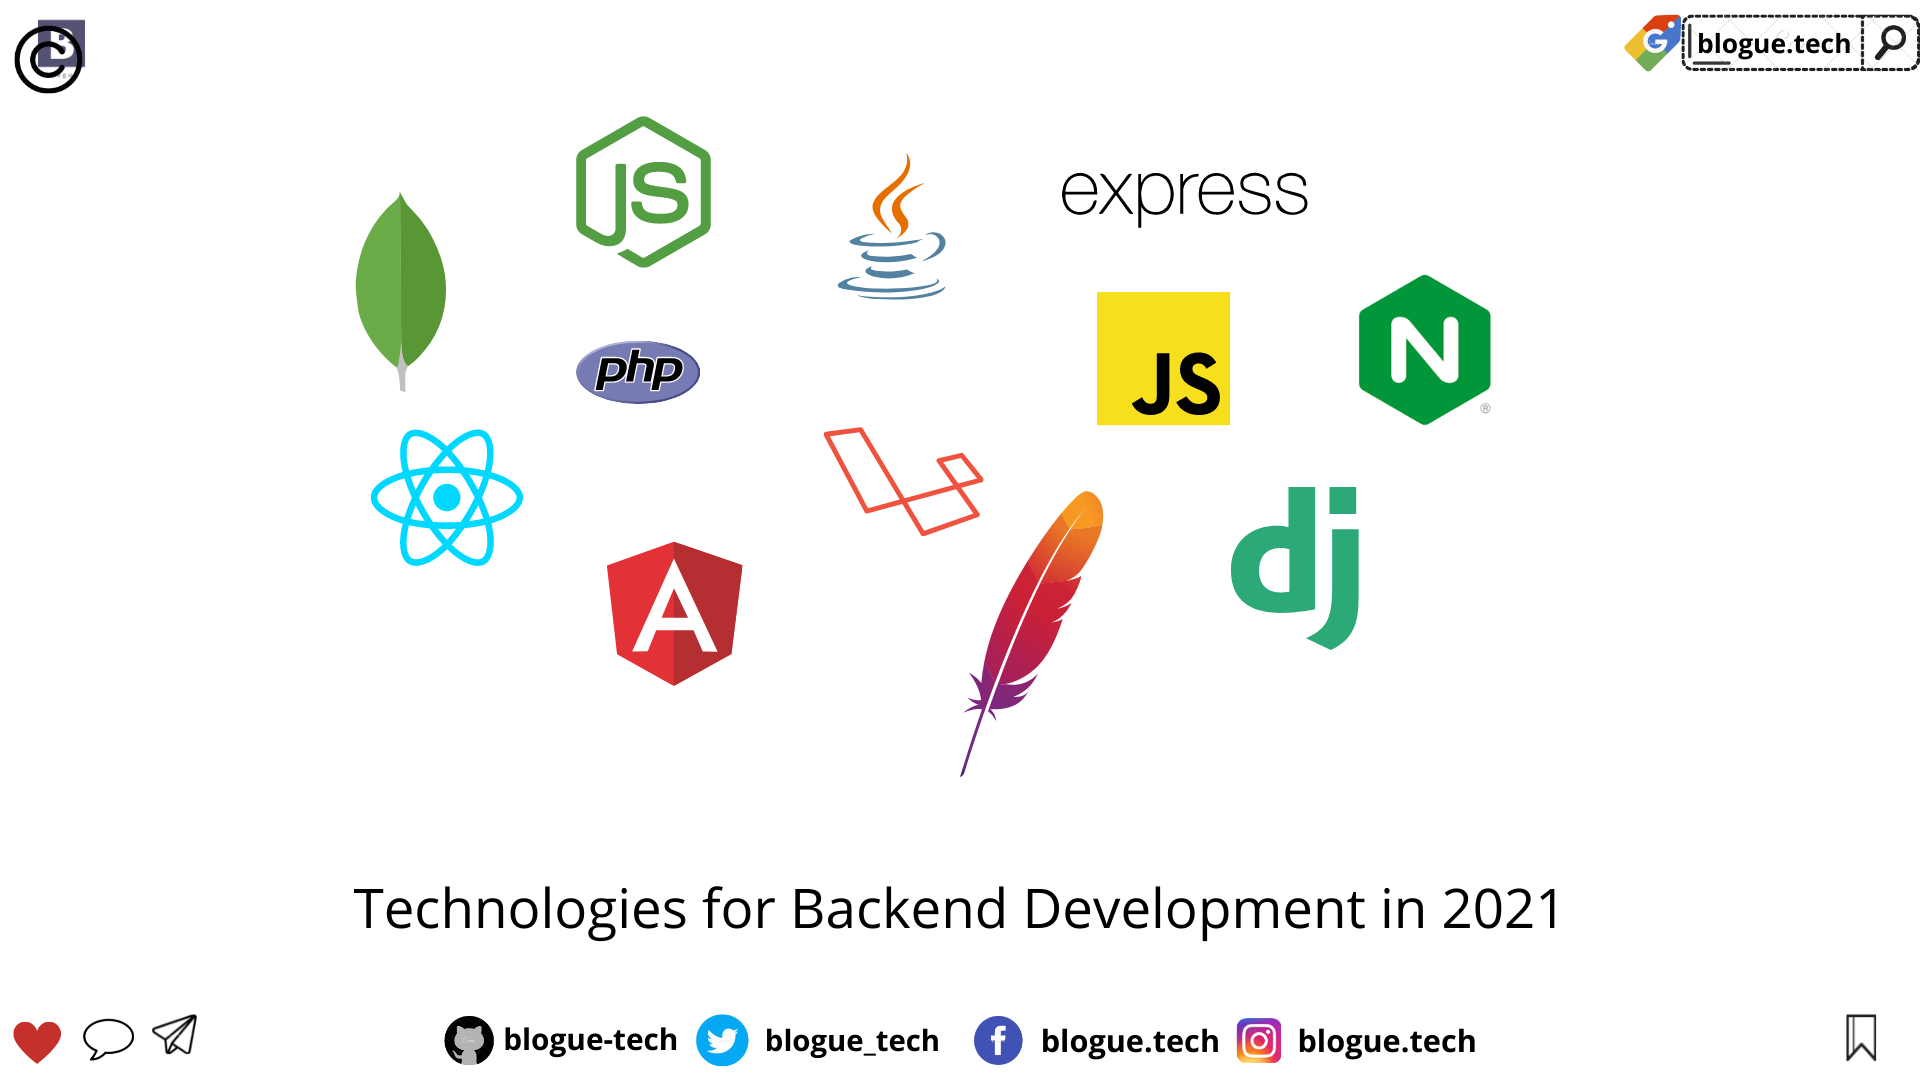 Technologies for Backend Development in 2021